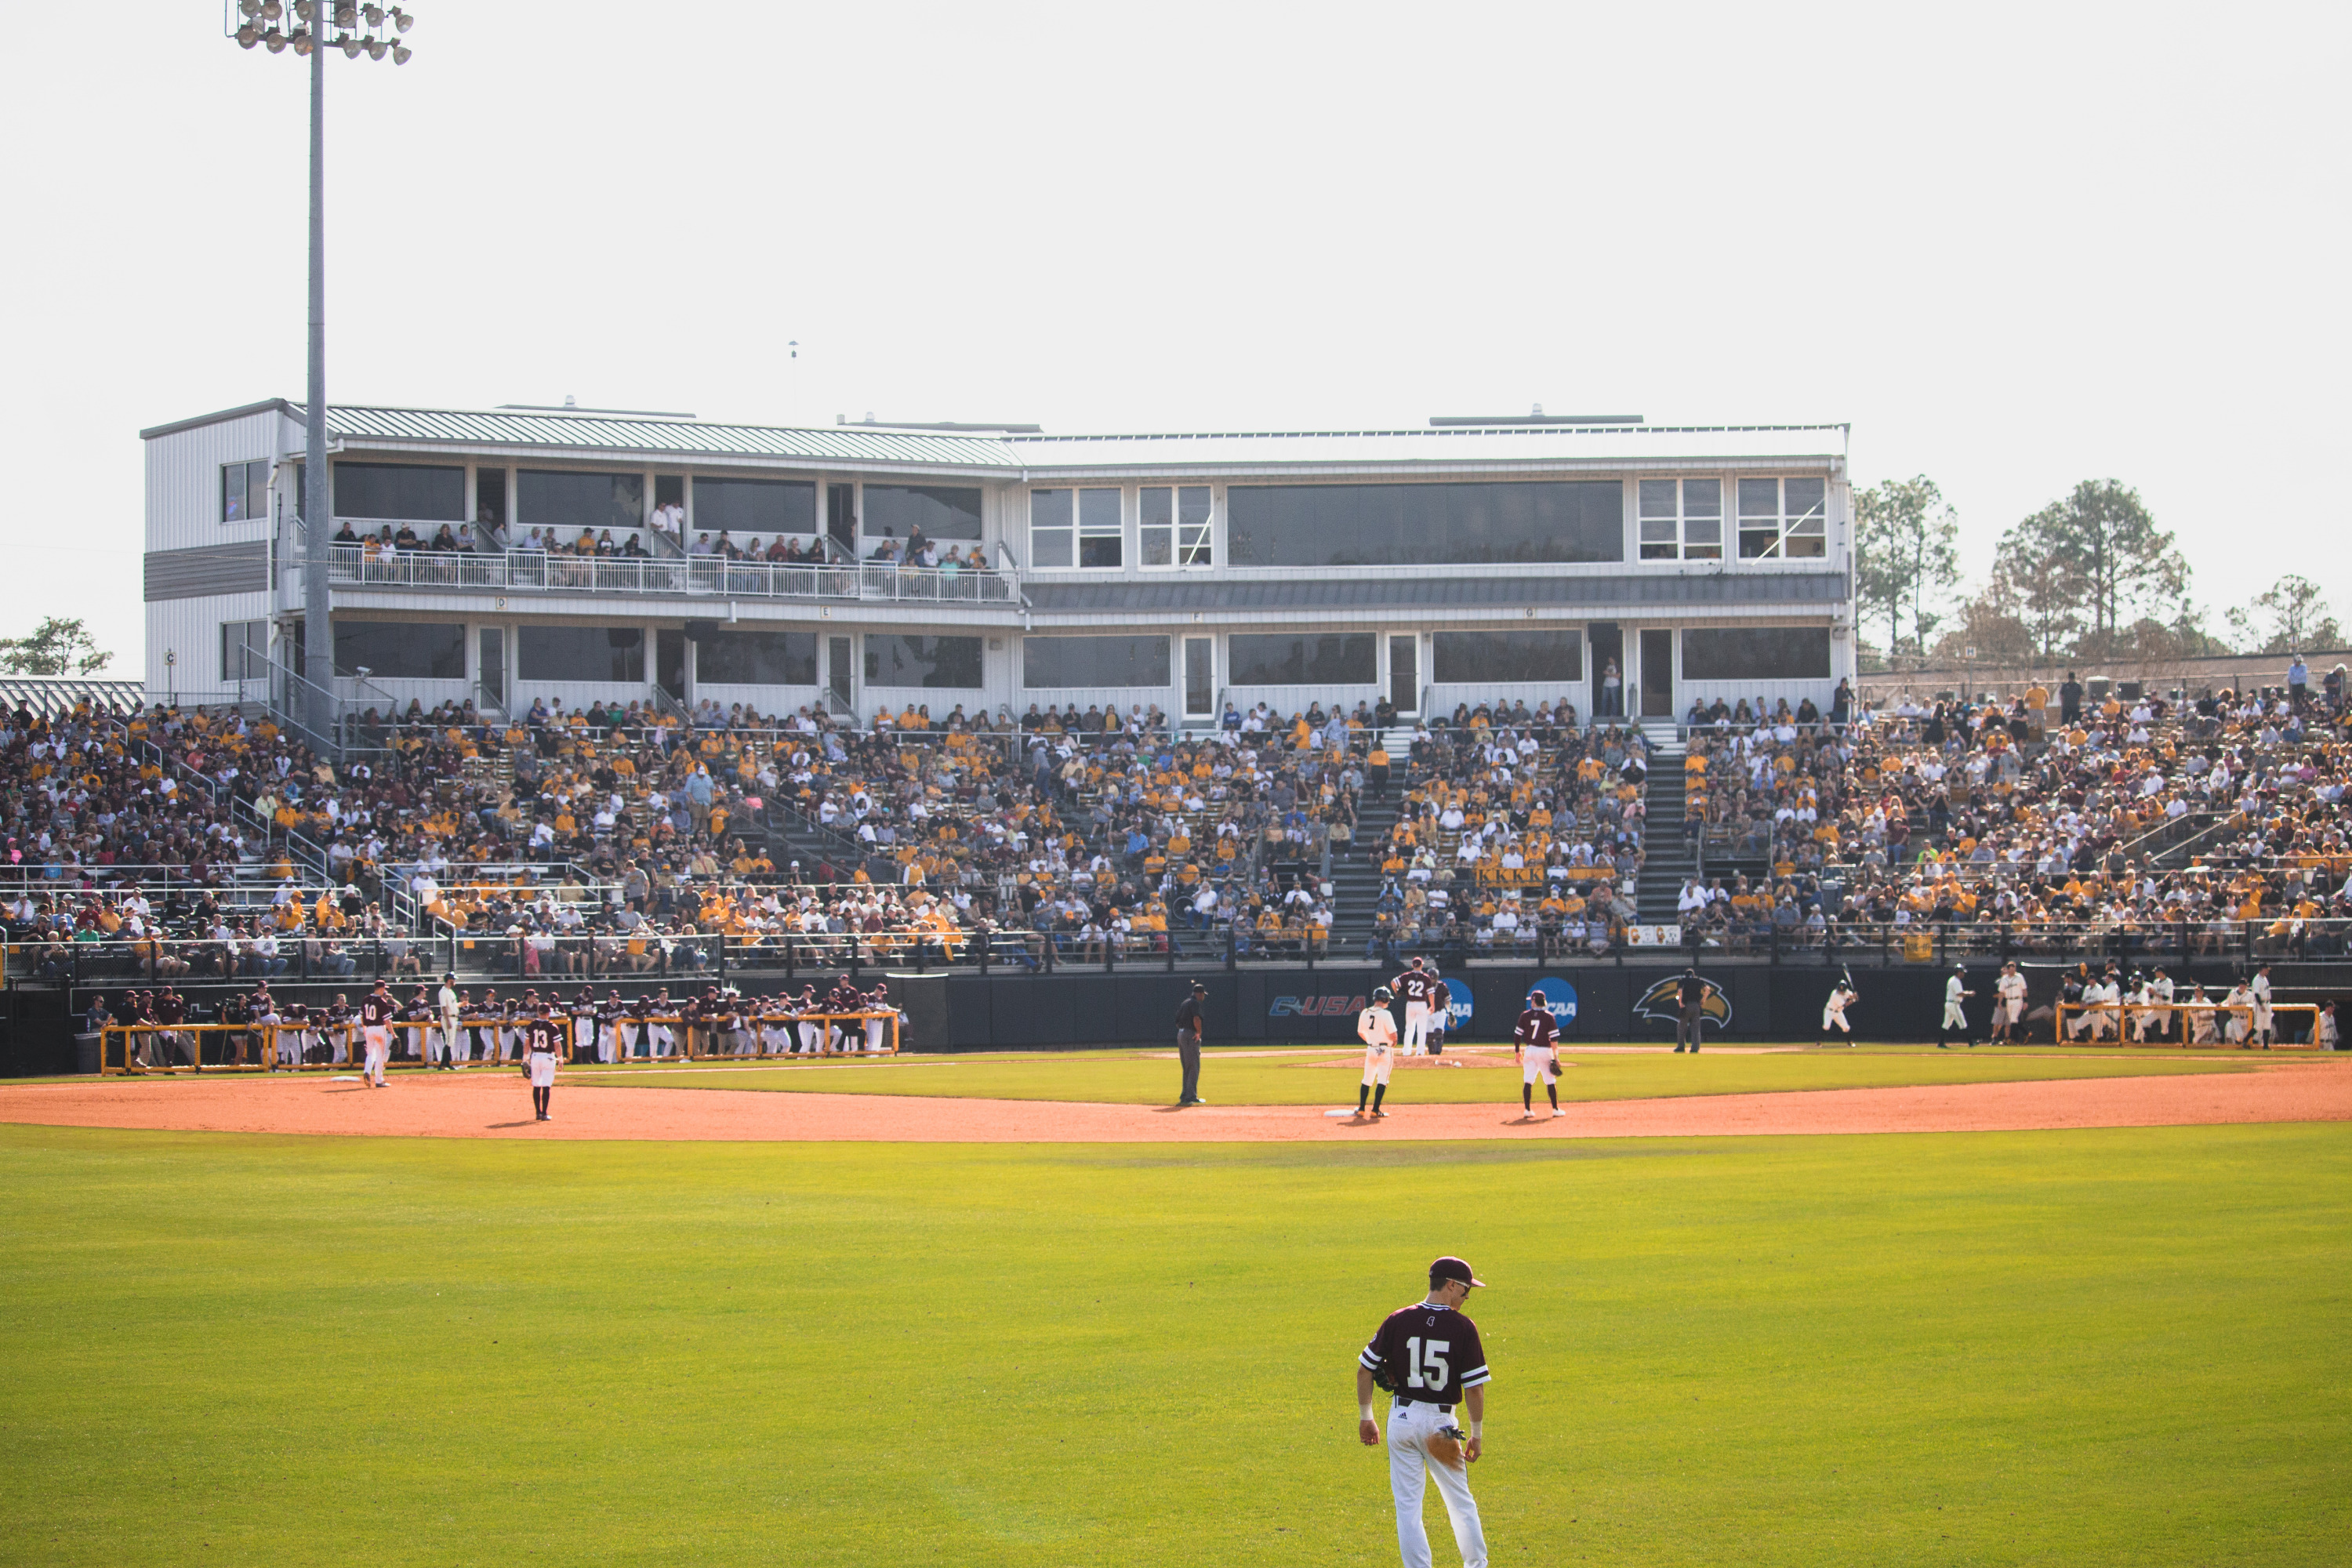 baseball opening weekend produces record attendance numbers